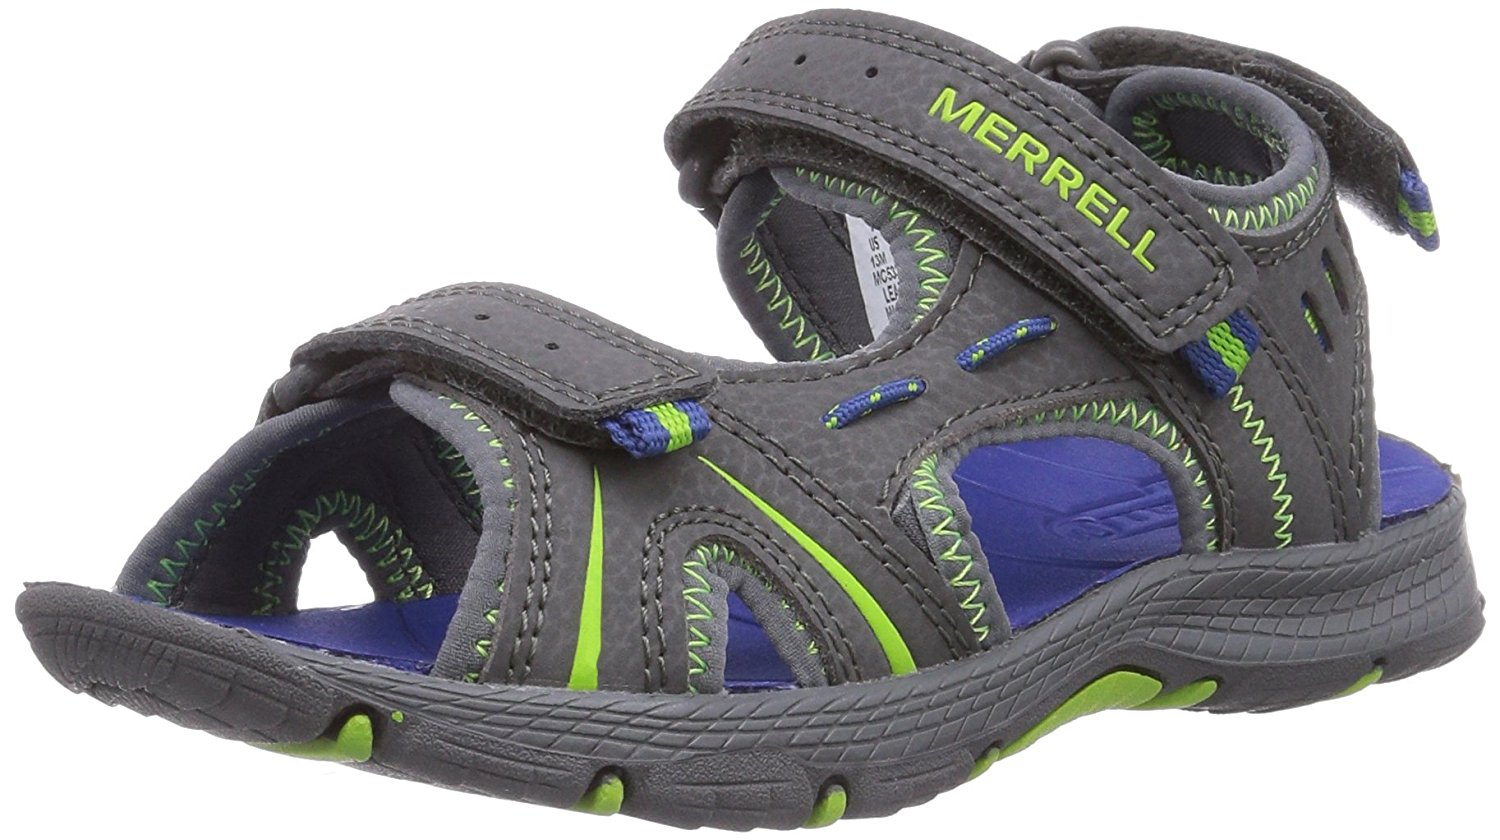 be37295d3a0b Get Quotations · Merrell Panther Athletic Water Sandal (Toddler Little  Kid Big Kid)